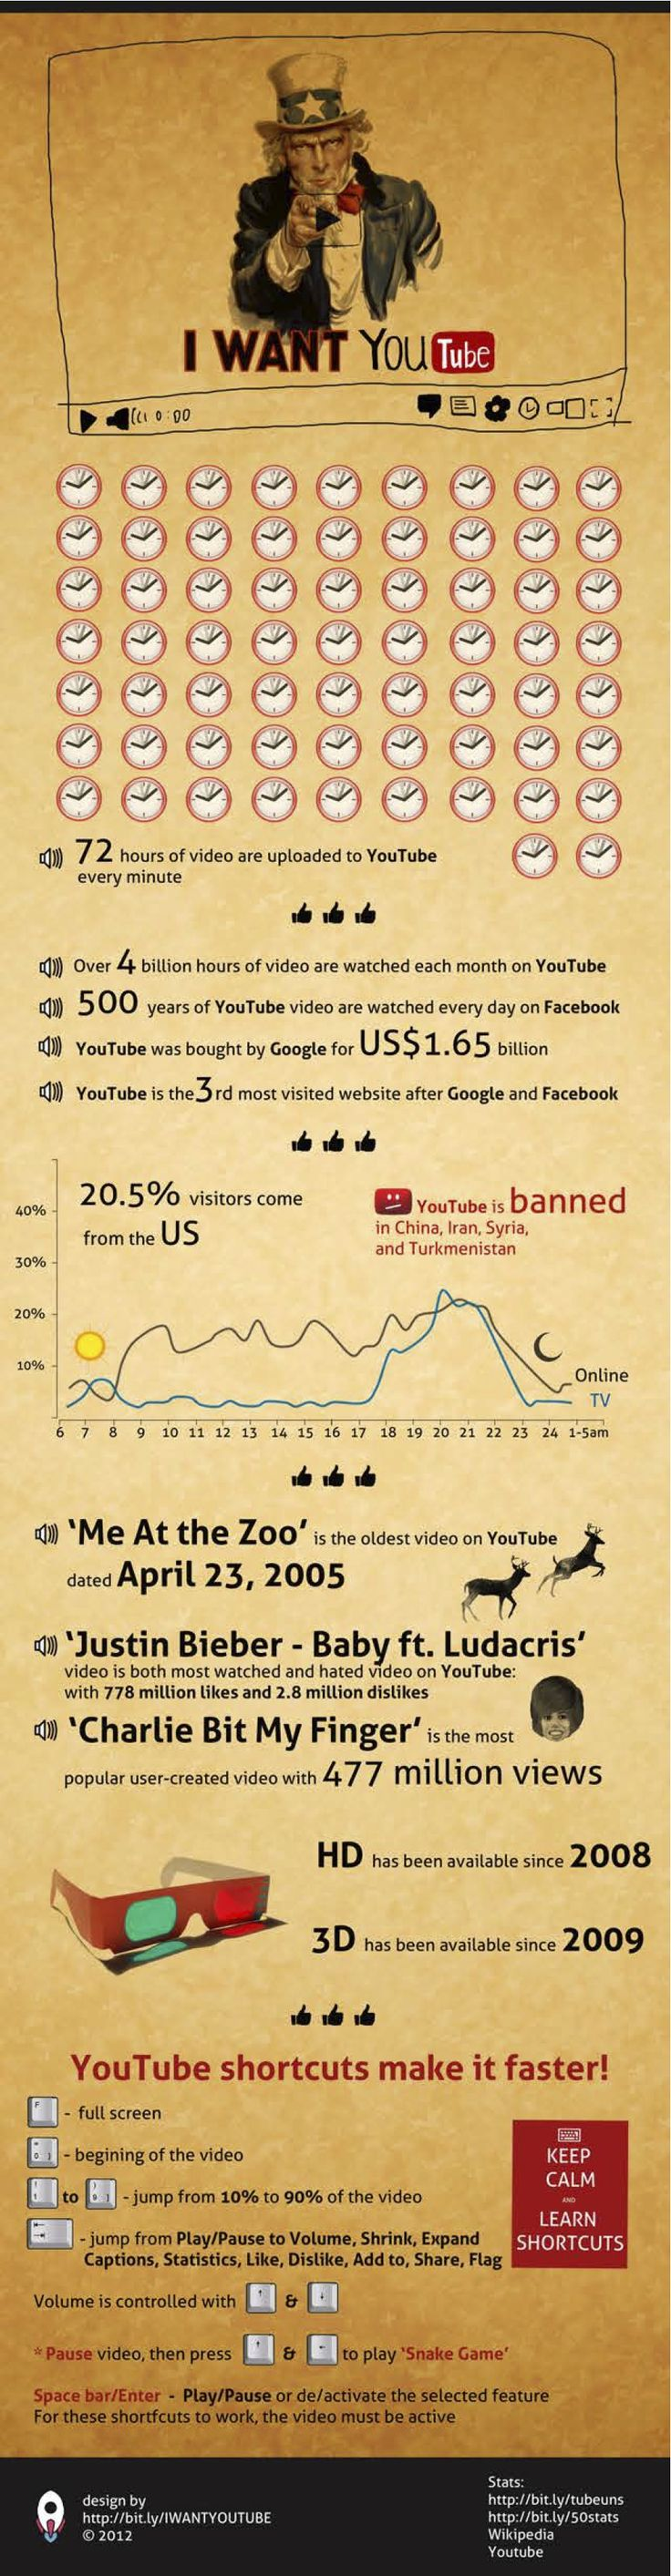 I want #YouTube #infographic #RedesSociales #SocialMedia